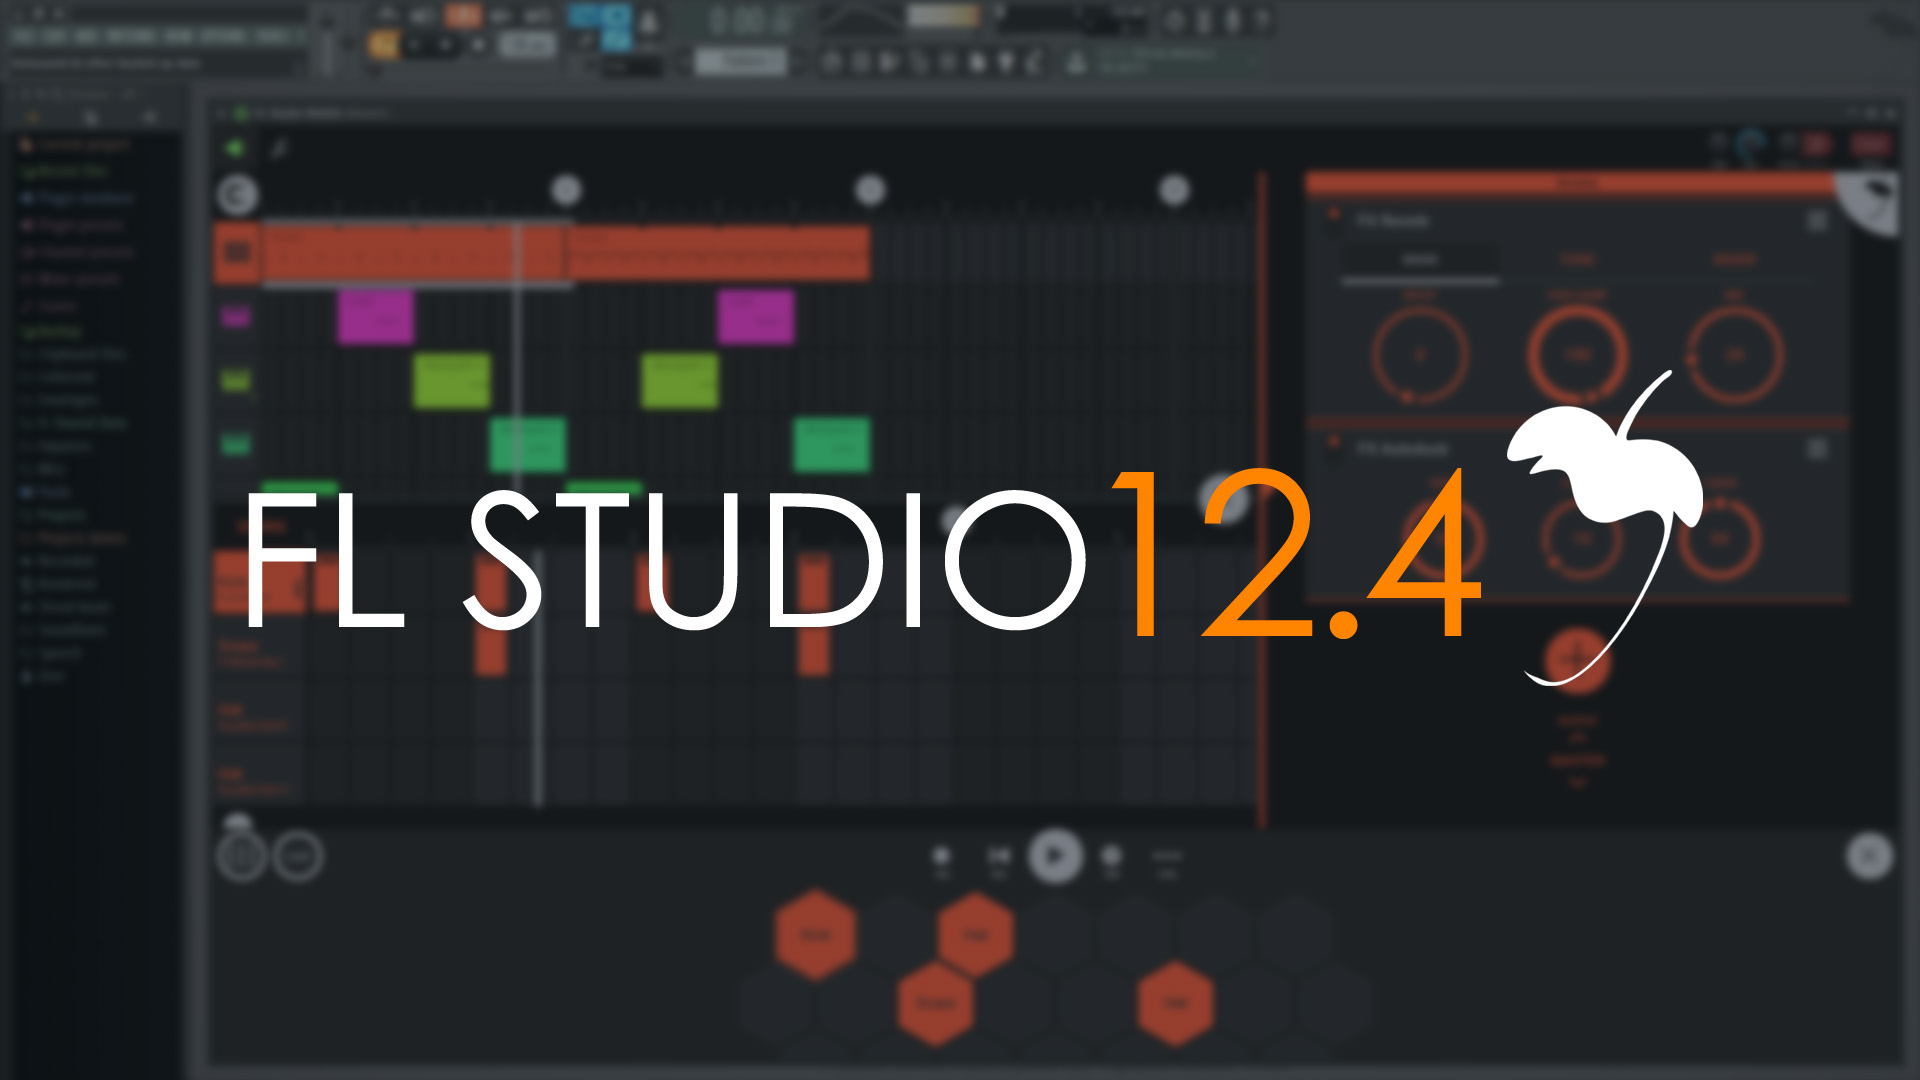 FL Studio 12.4.1 Released